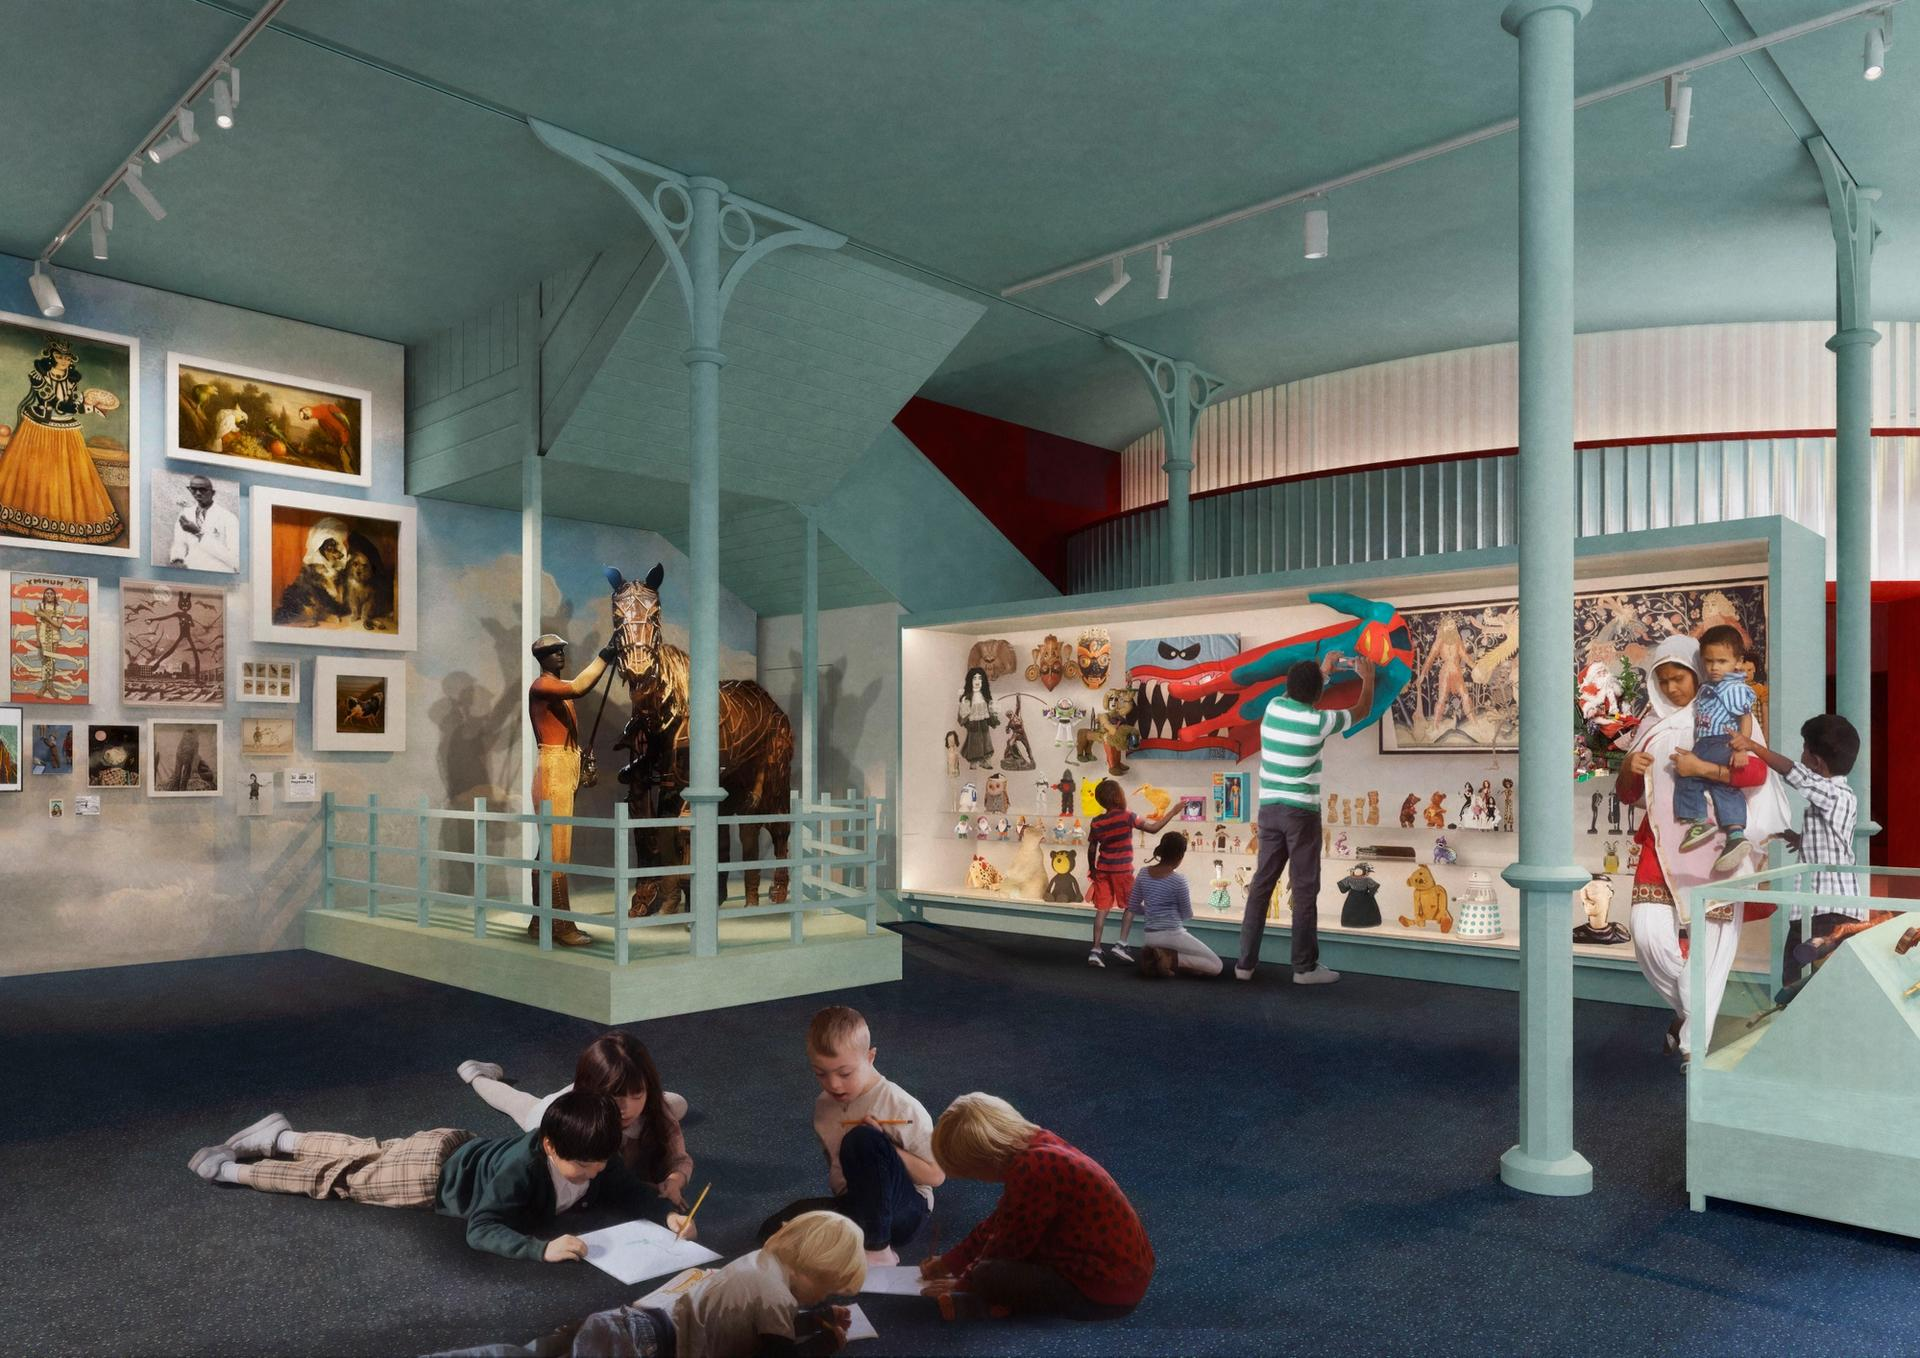 A rendering of the Adventure display in the Imagine Gallery of the renamed Young V&A. Image: Picture Plane © Victoria and Albert Museum, London